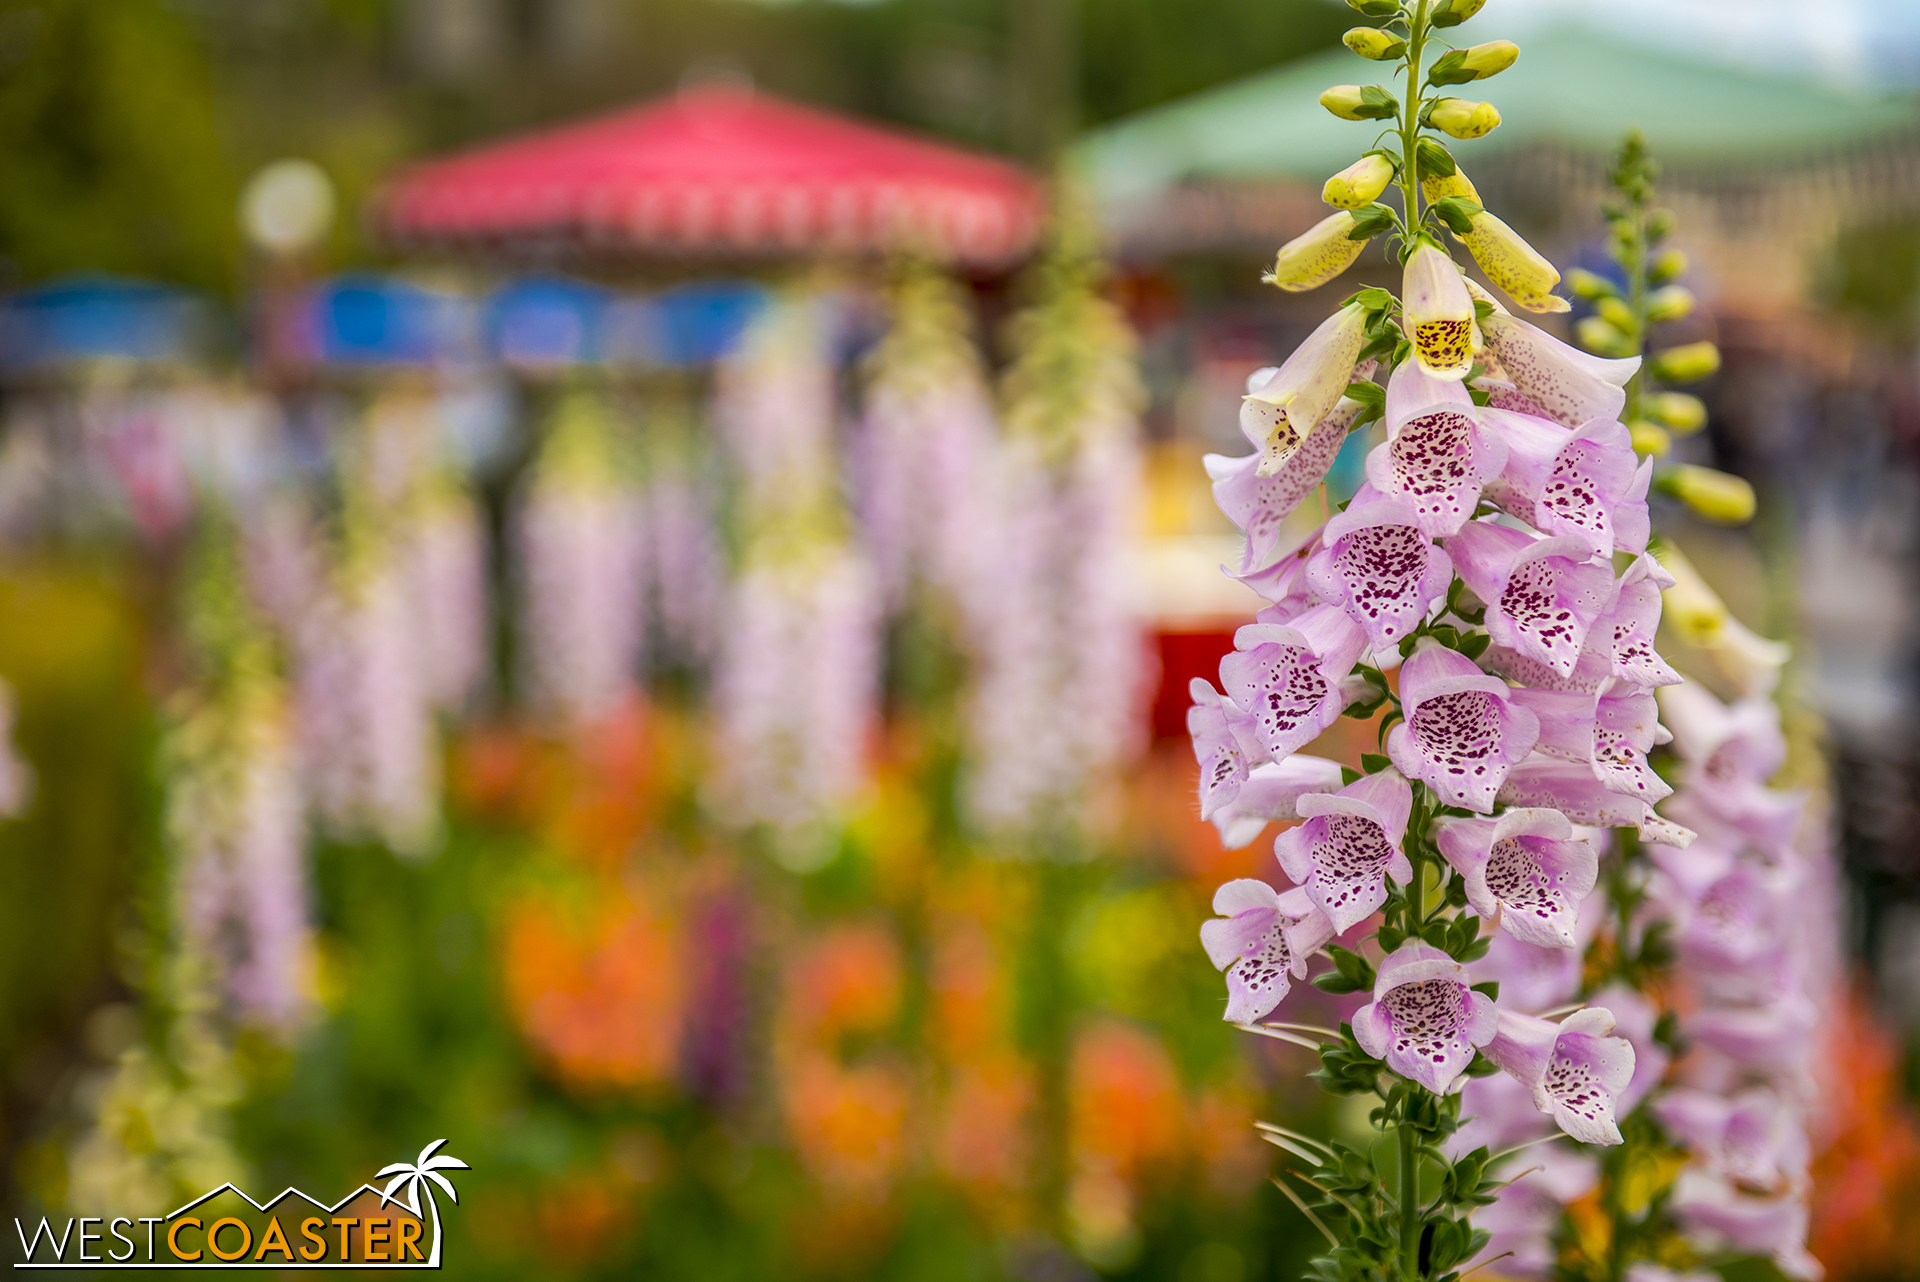 Foxgloves are also the flower of choice during this time of year too, providing beautiful photo ops.